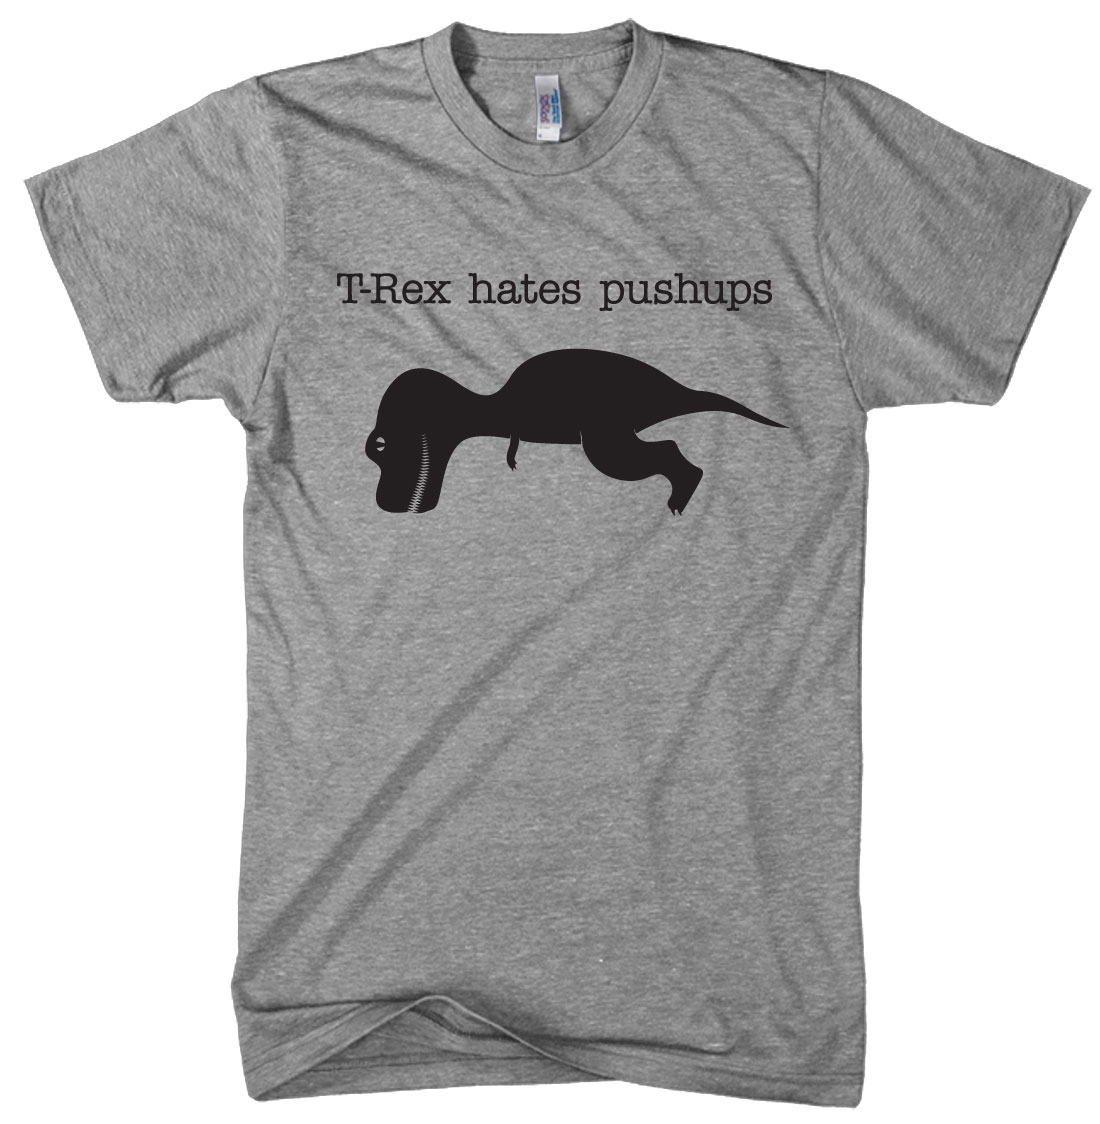 Crazy Dog Tshirts T-Rex Hates Pushups t shirt funny shirt dinosaur t shirt at Sears.com